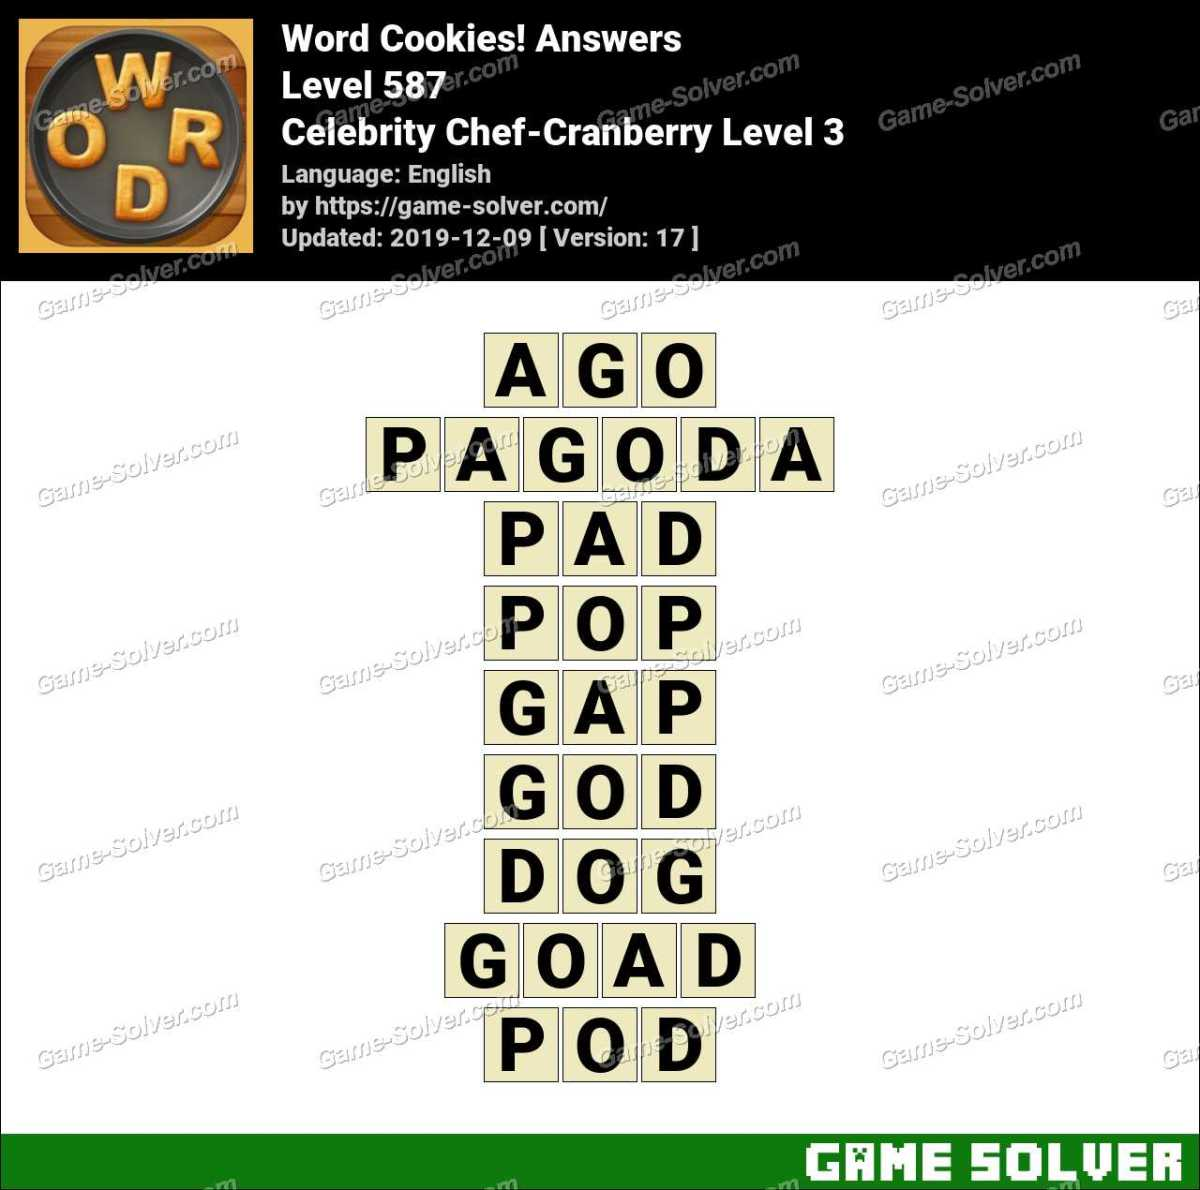 Word Cookies Celebrity Chef-Cranberry Level 3 Answers